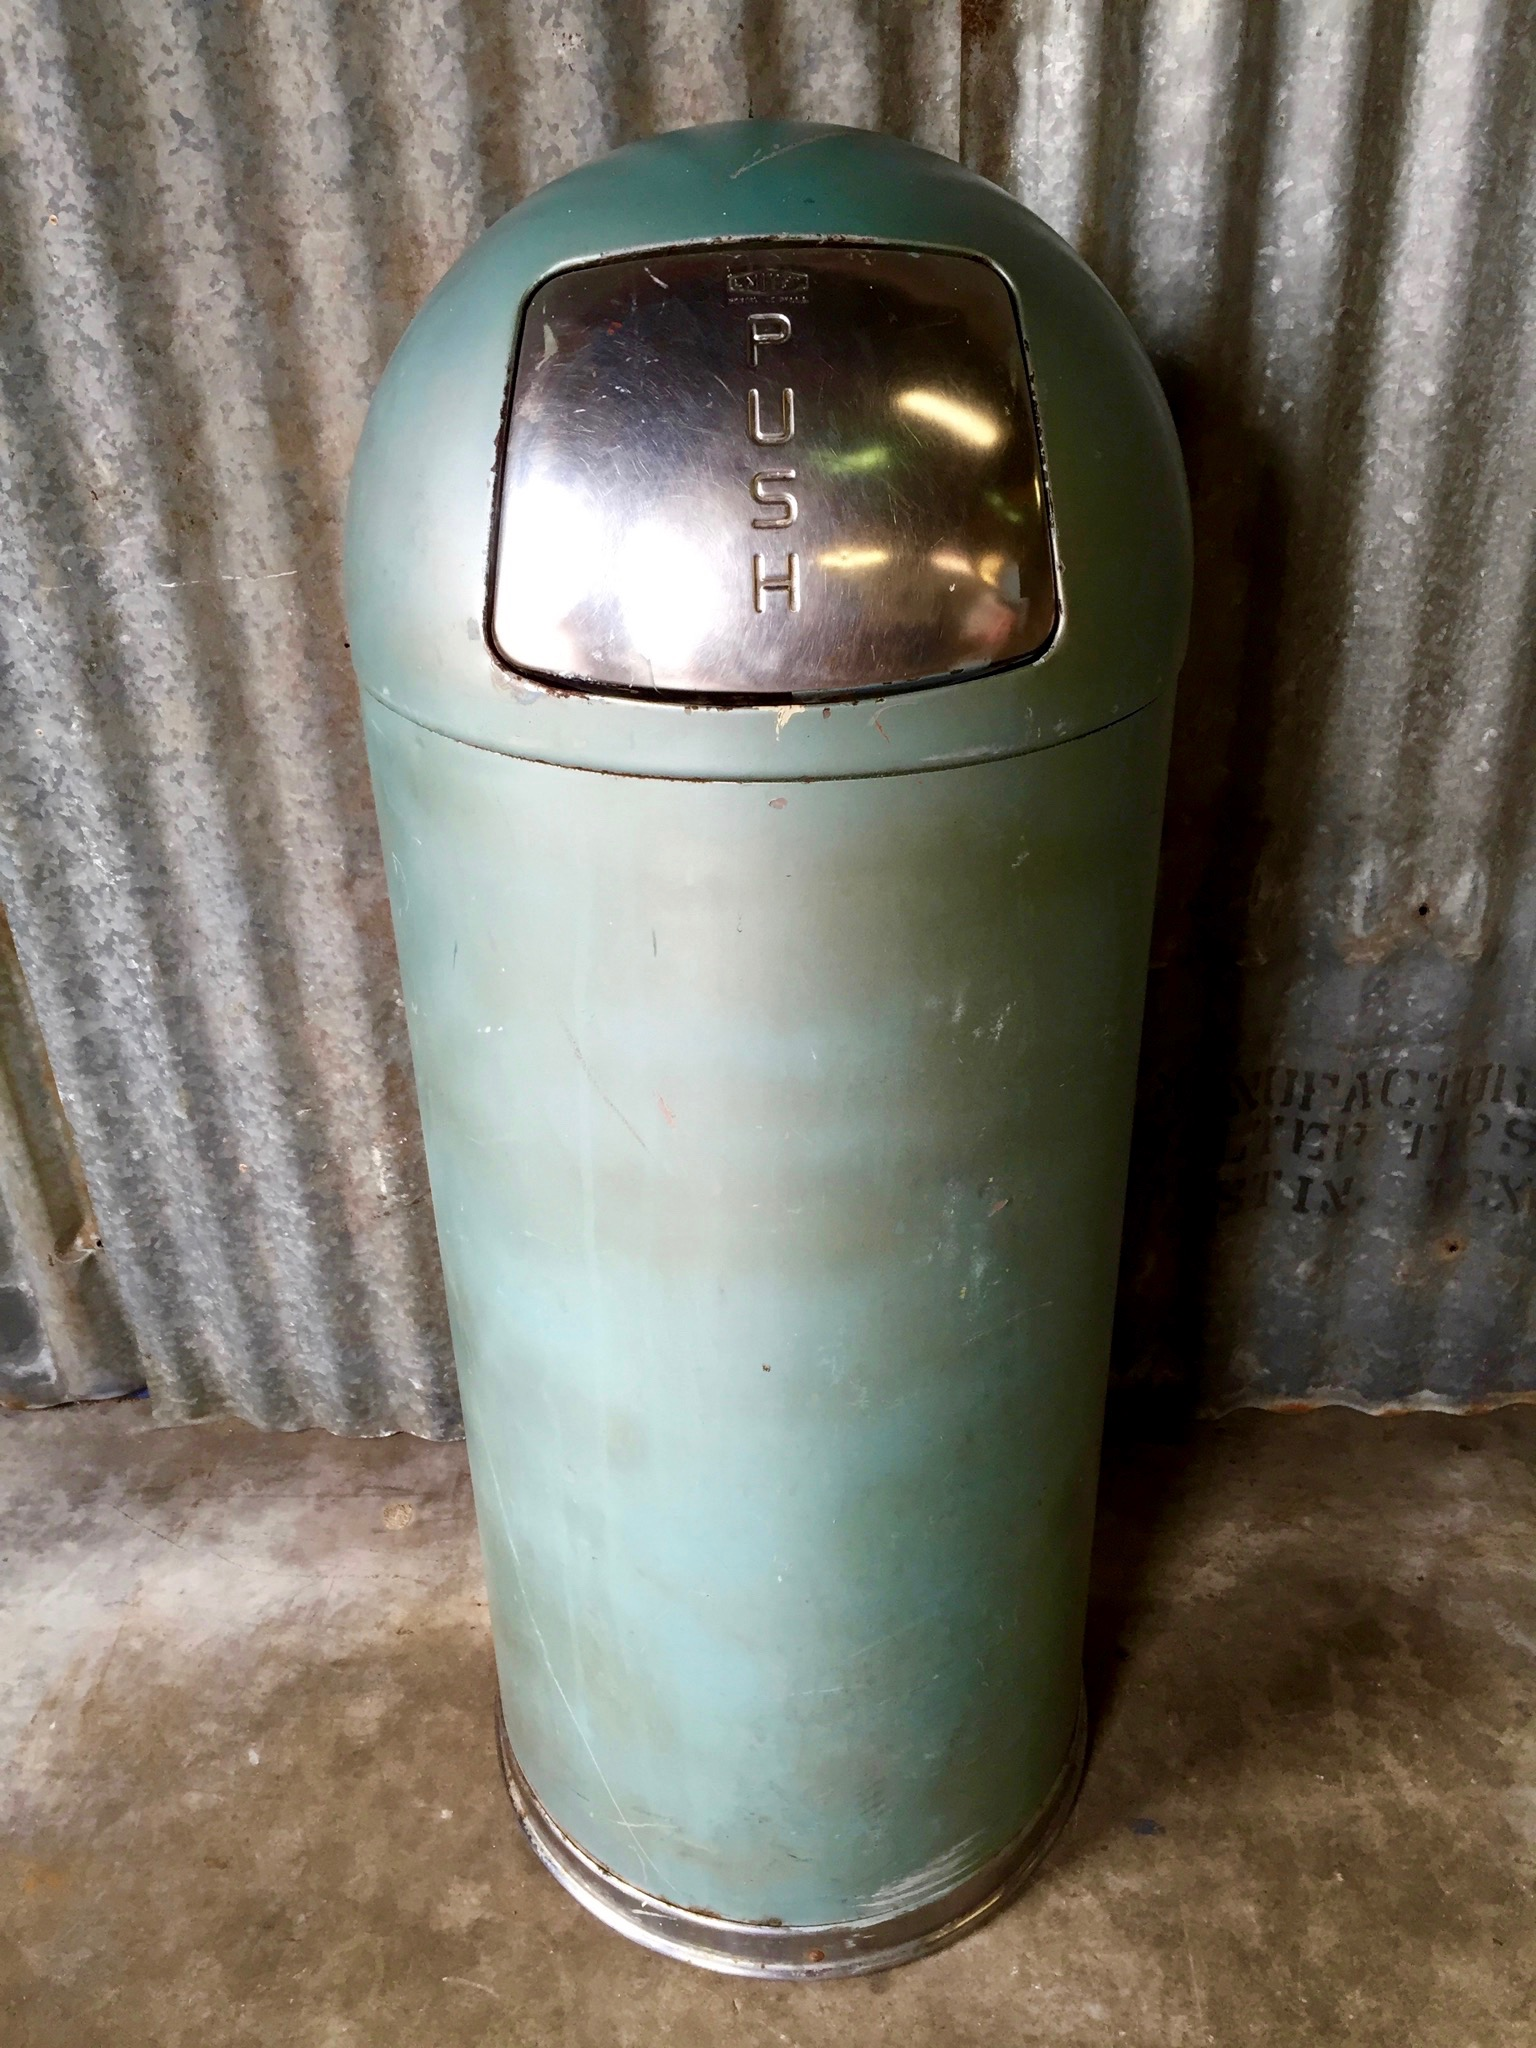 vintage united metal trash can image 10 of 11